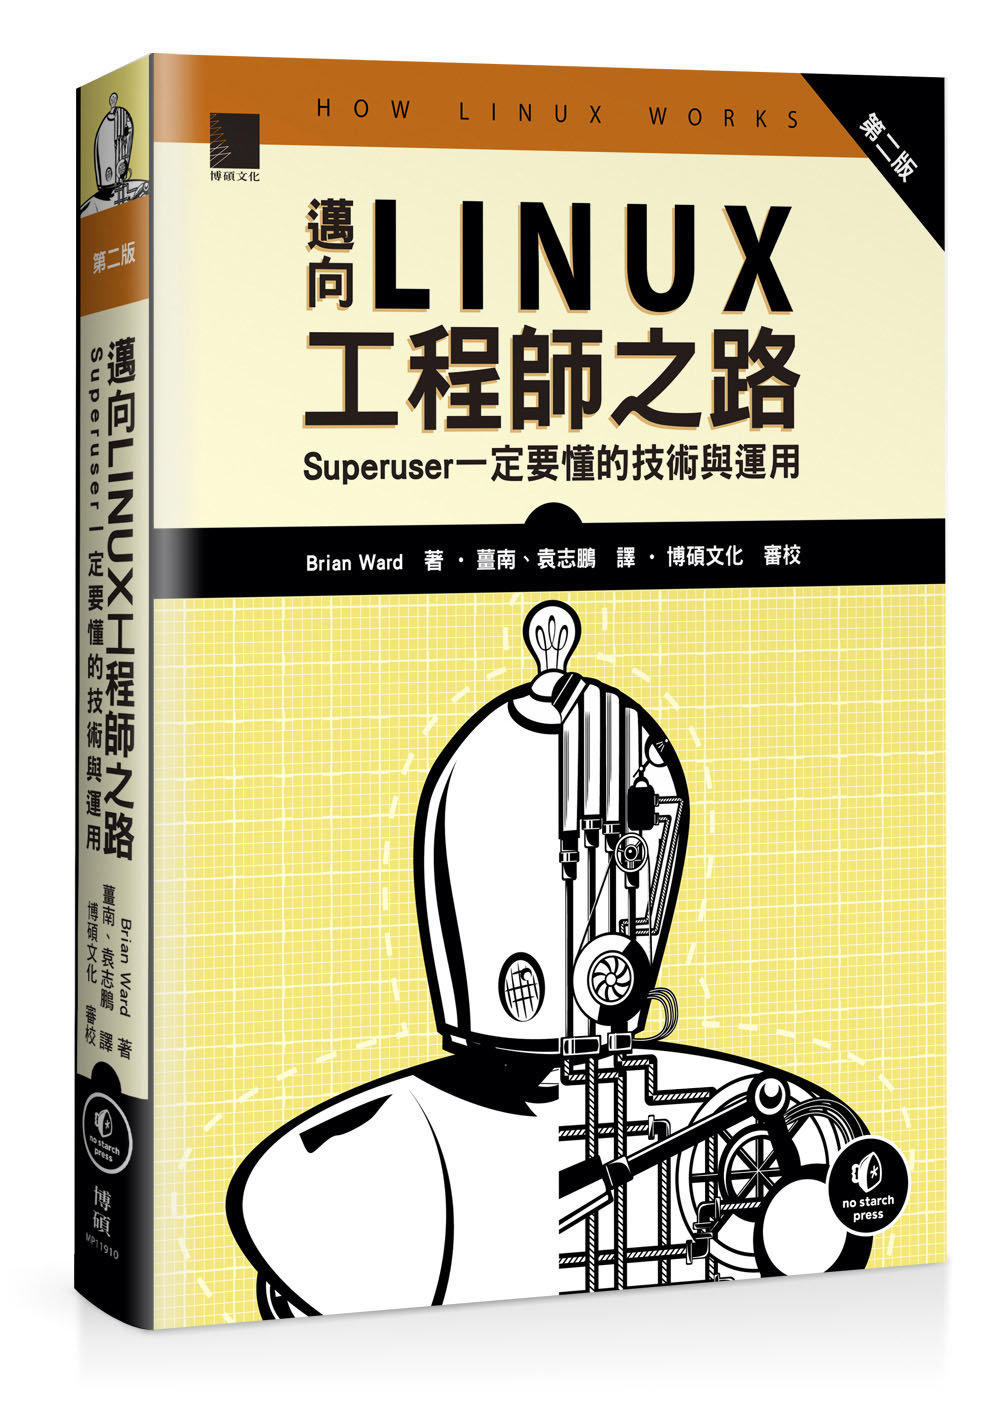 邁向 Linux 工程師之路:Superuser 一定要懂的技術與運用, 2/e (How Linux Works: What Every Superuser Should Know, 2/e)-preview-1